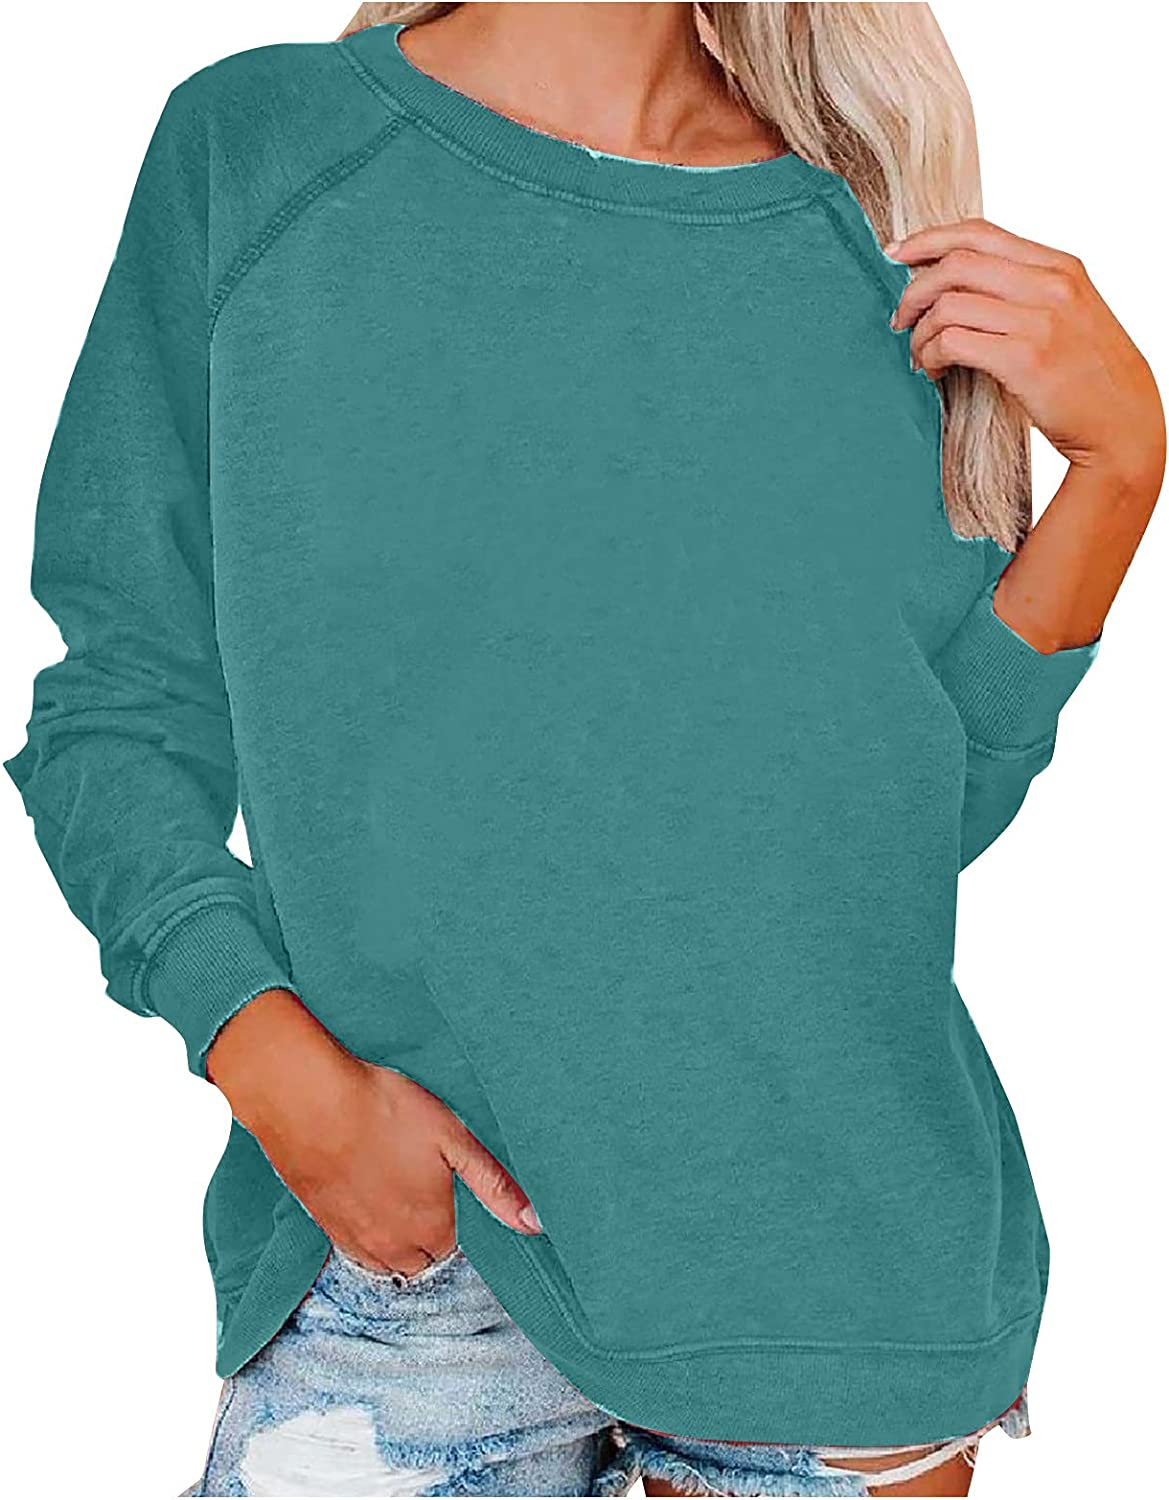 Women's Loose Fit Sweater Basic Fashion Casual Knitted Top Solid Color O-Neck Stitching Long Sleeve Pullovers Blouse